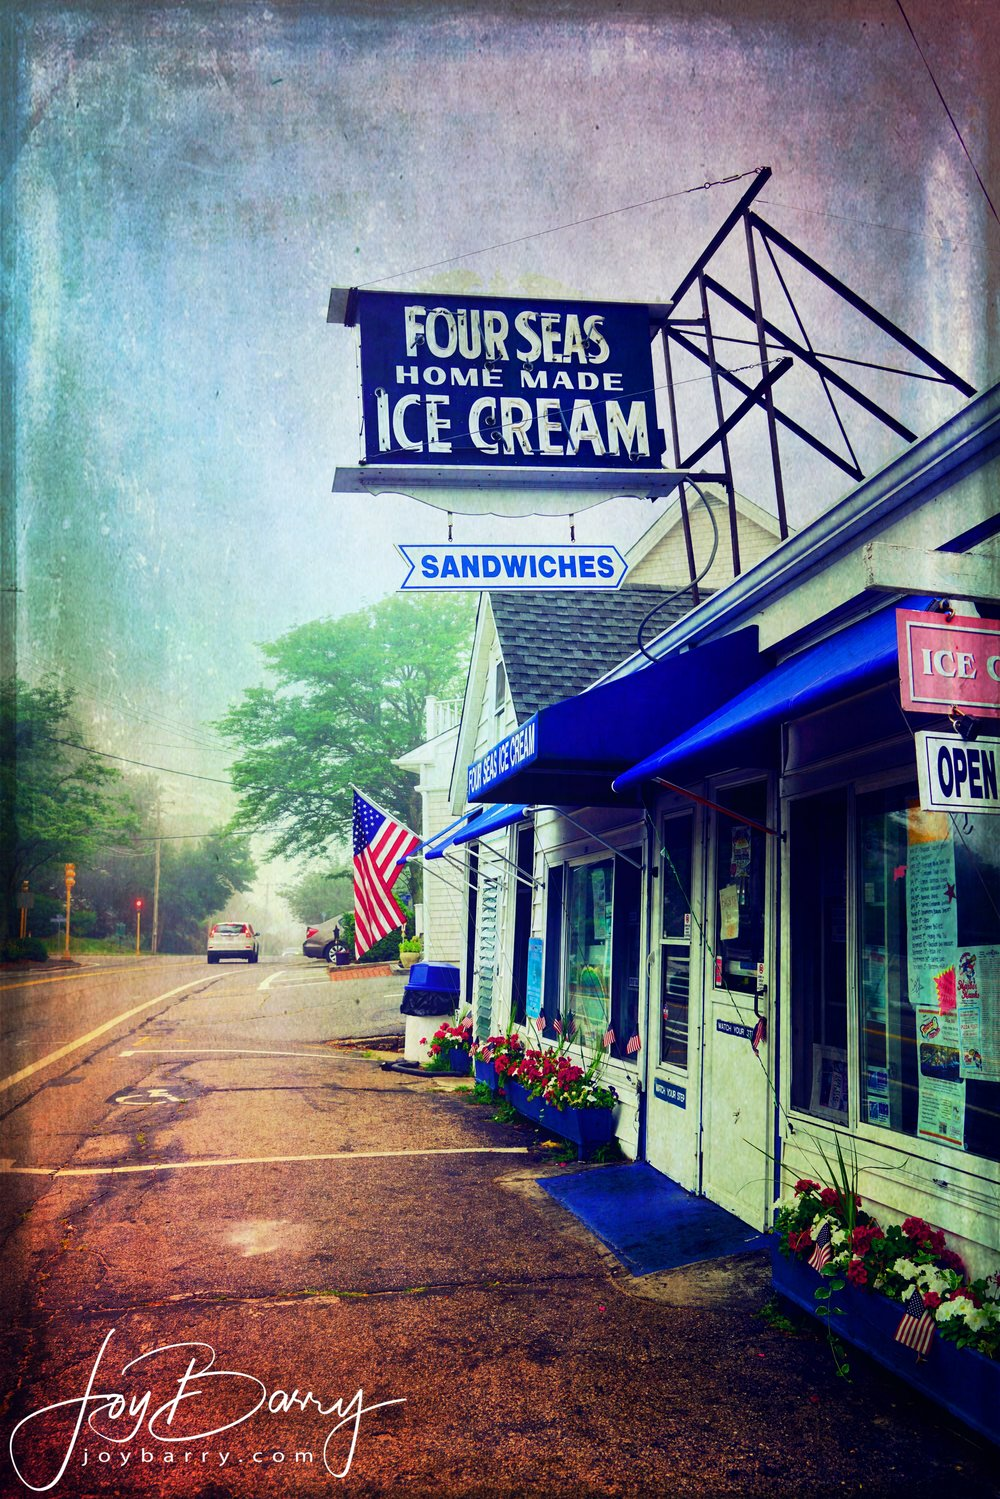 January 11, 2019 - Famous local ice cream shop (Four Seas Ice Cream in Centerville, Massachusetts).